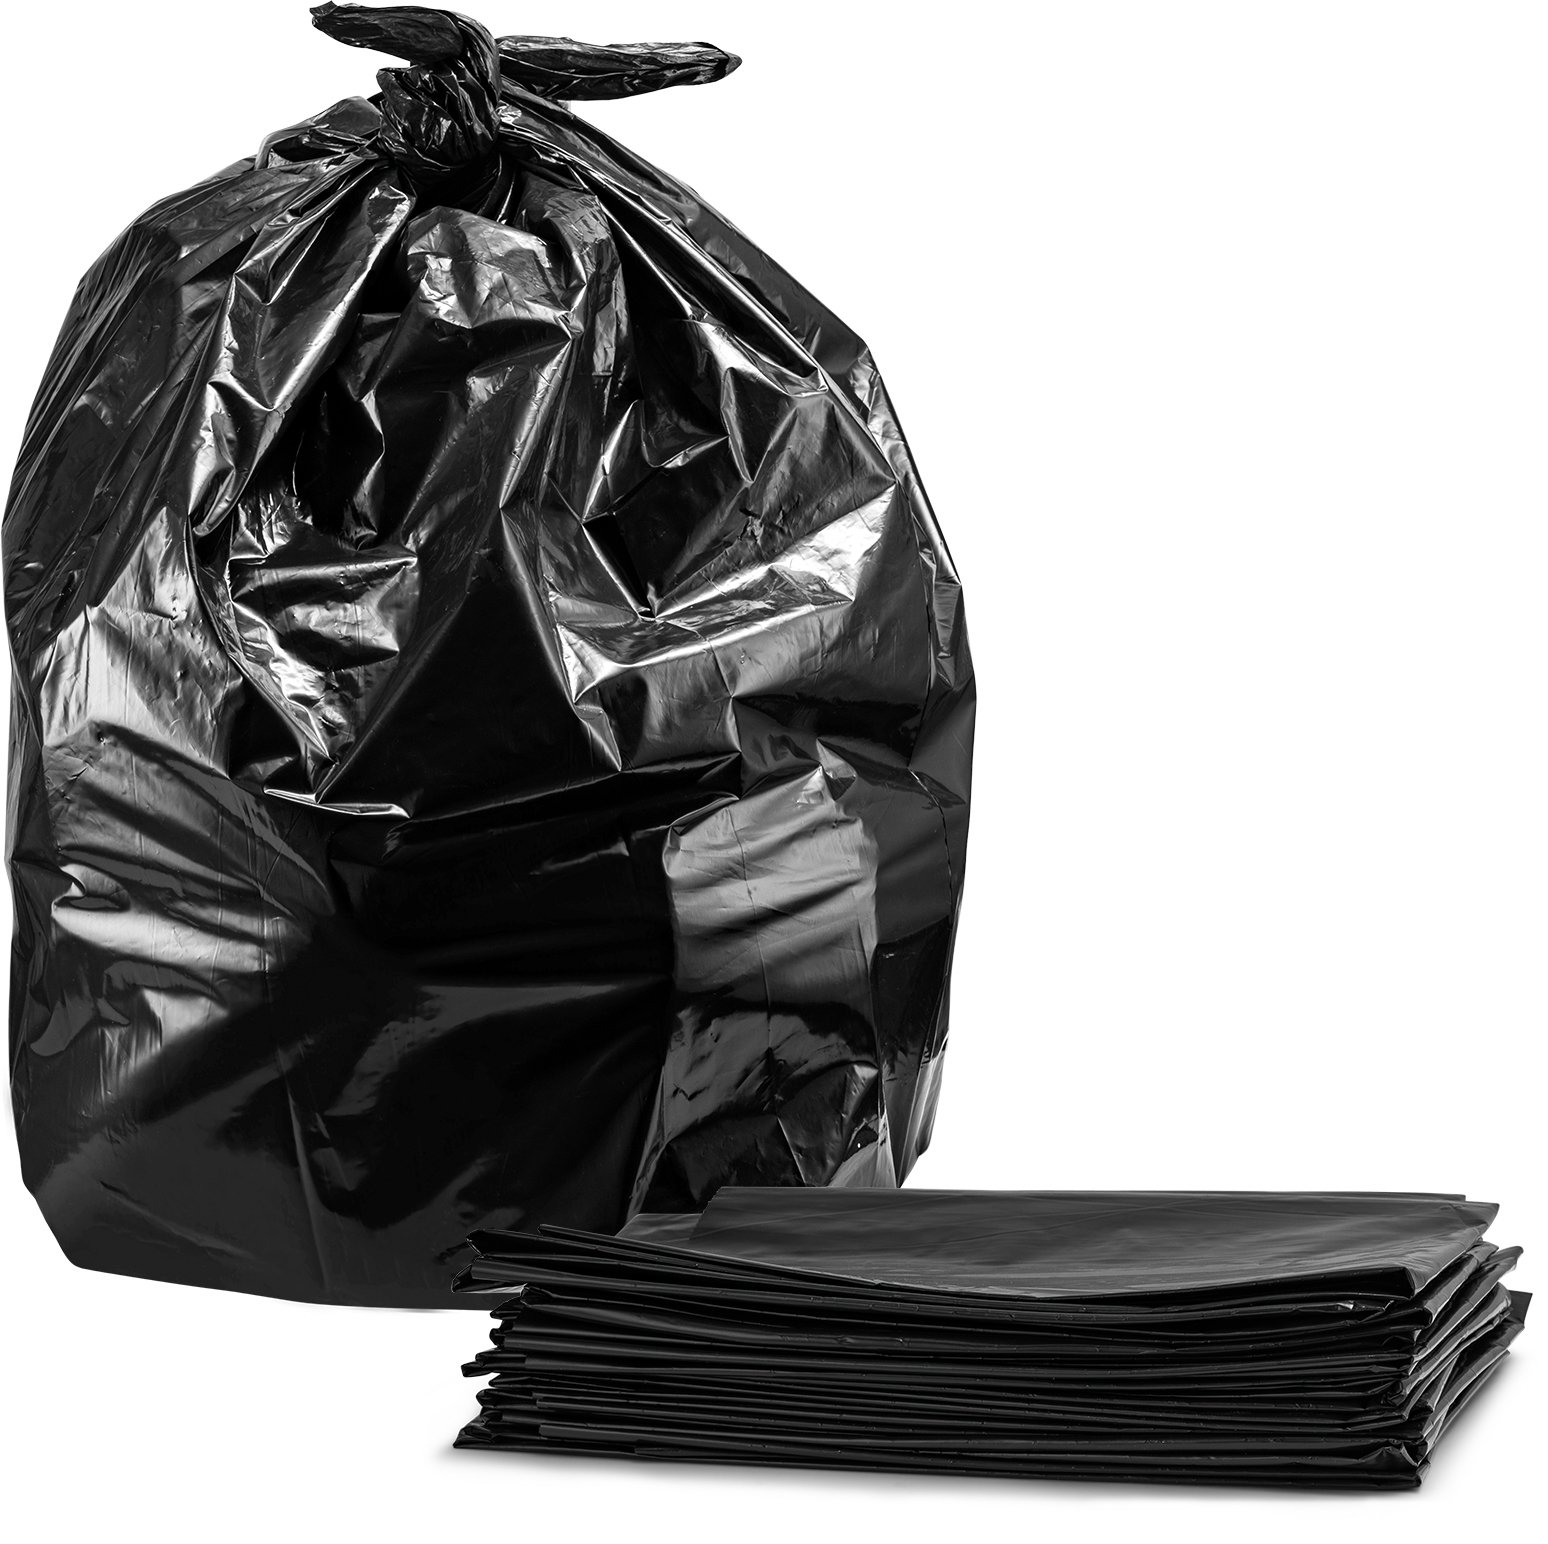 Trash Bags 40-45 Gallon, Large Black Garbage Bags, 100/Count, 40''W x 46''H by Tasker